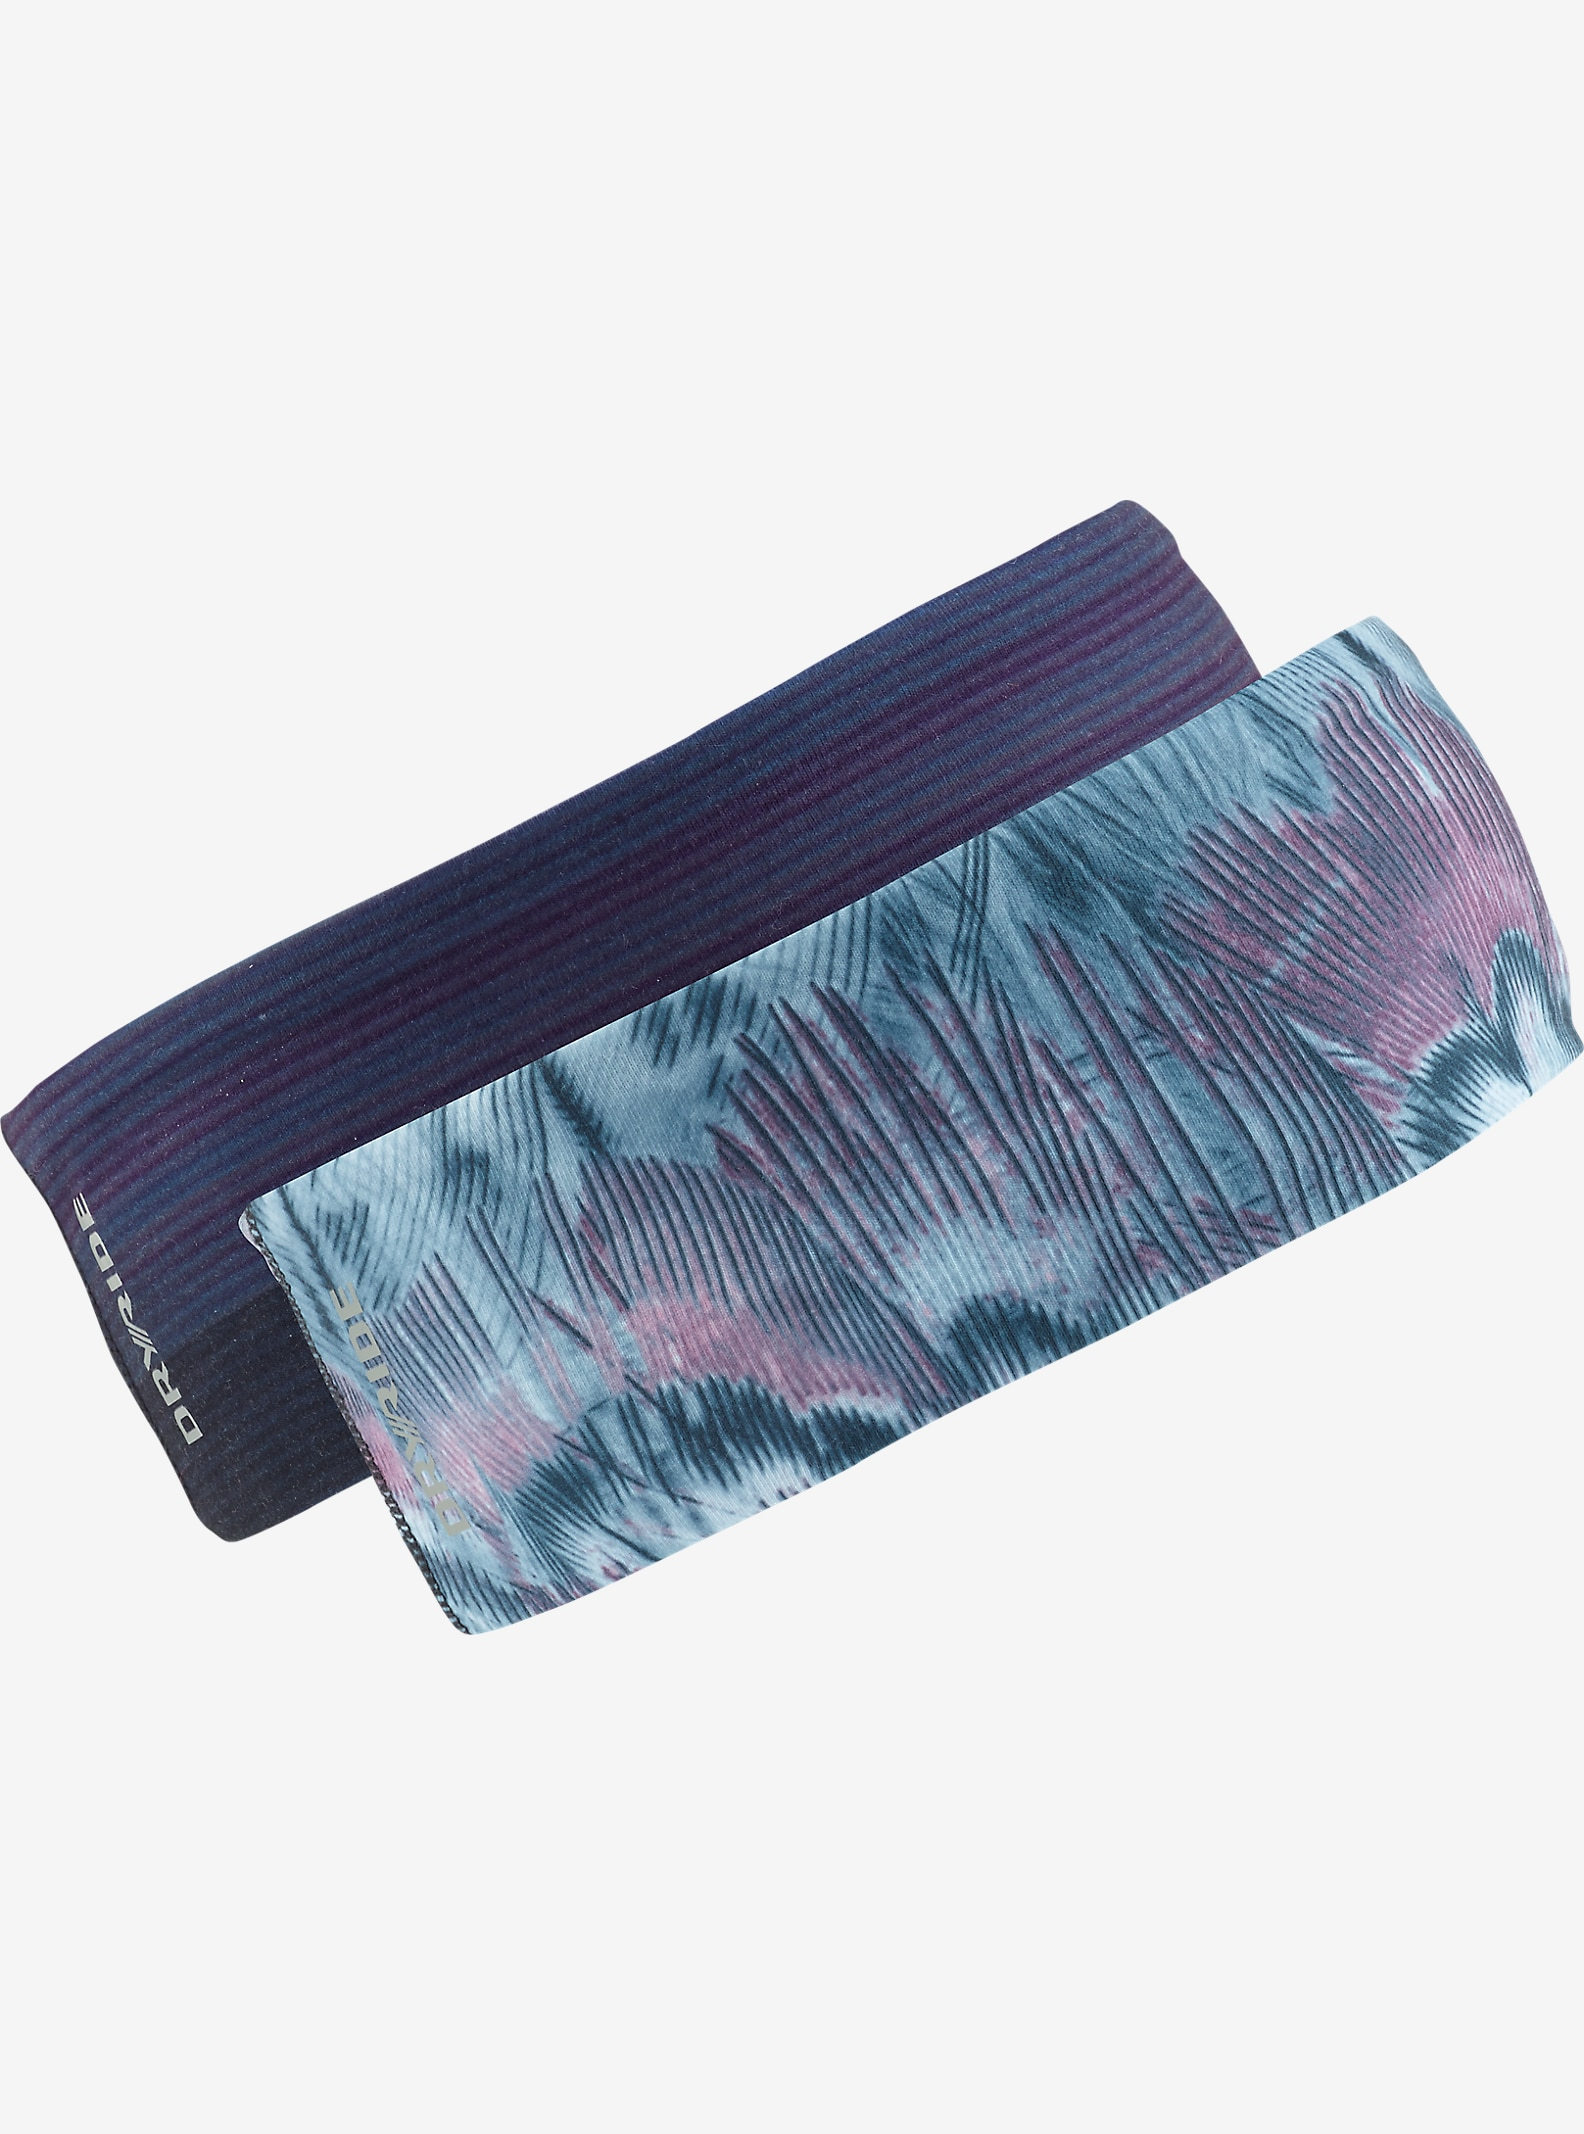 Burton Kyle Headband 2-Pack shown in Feathers / Coral Flynn Glitch